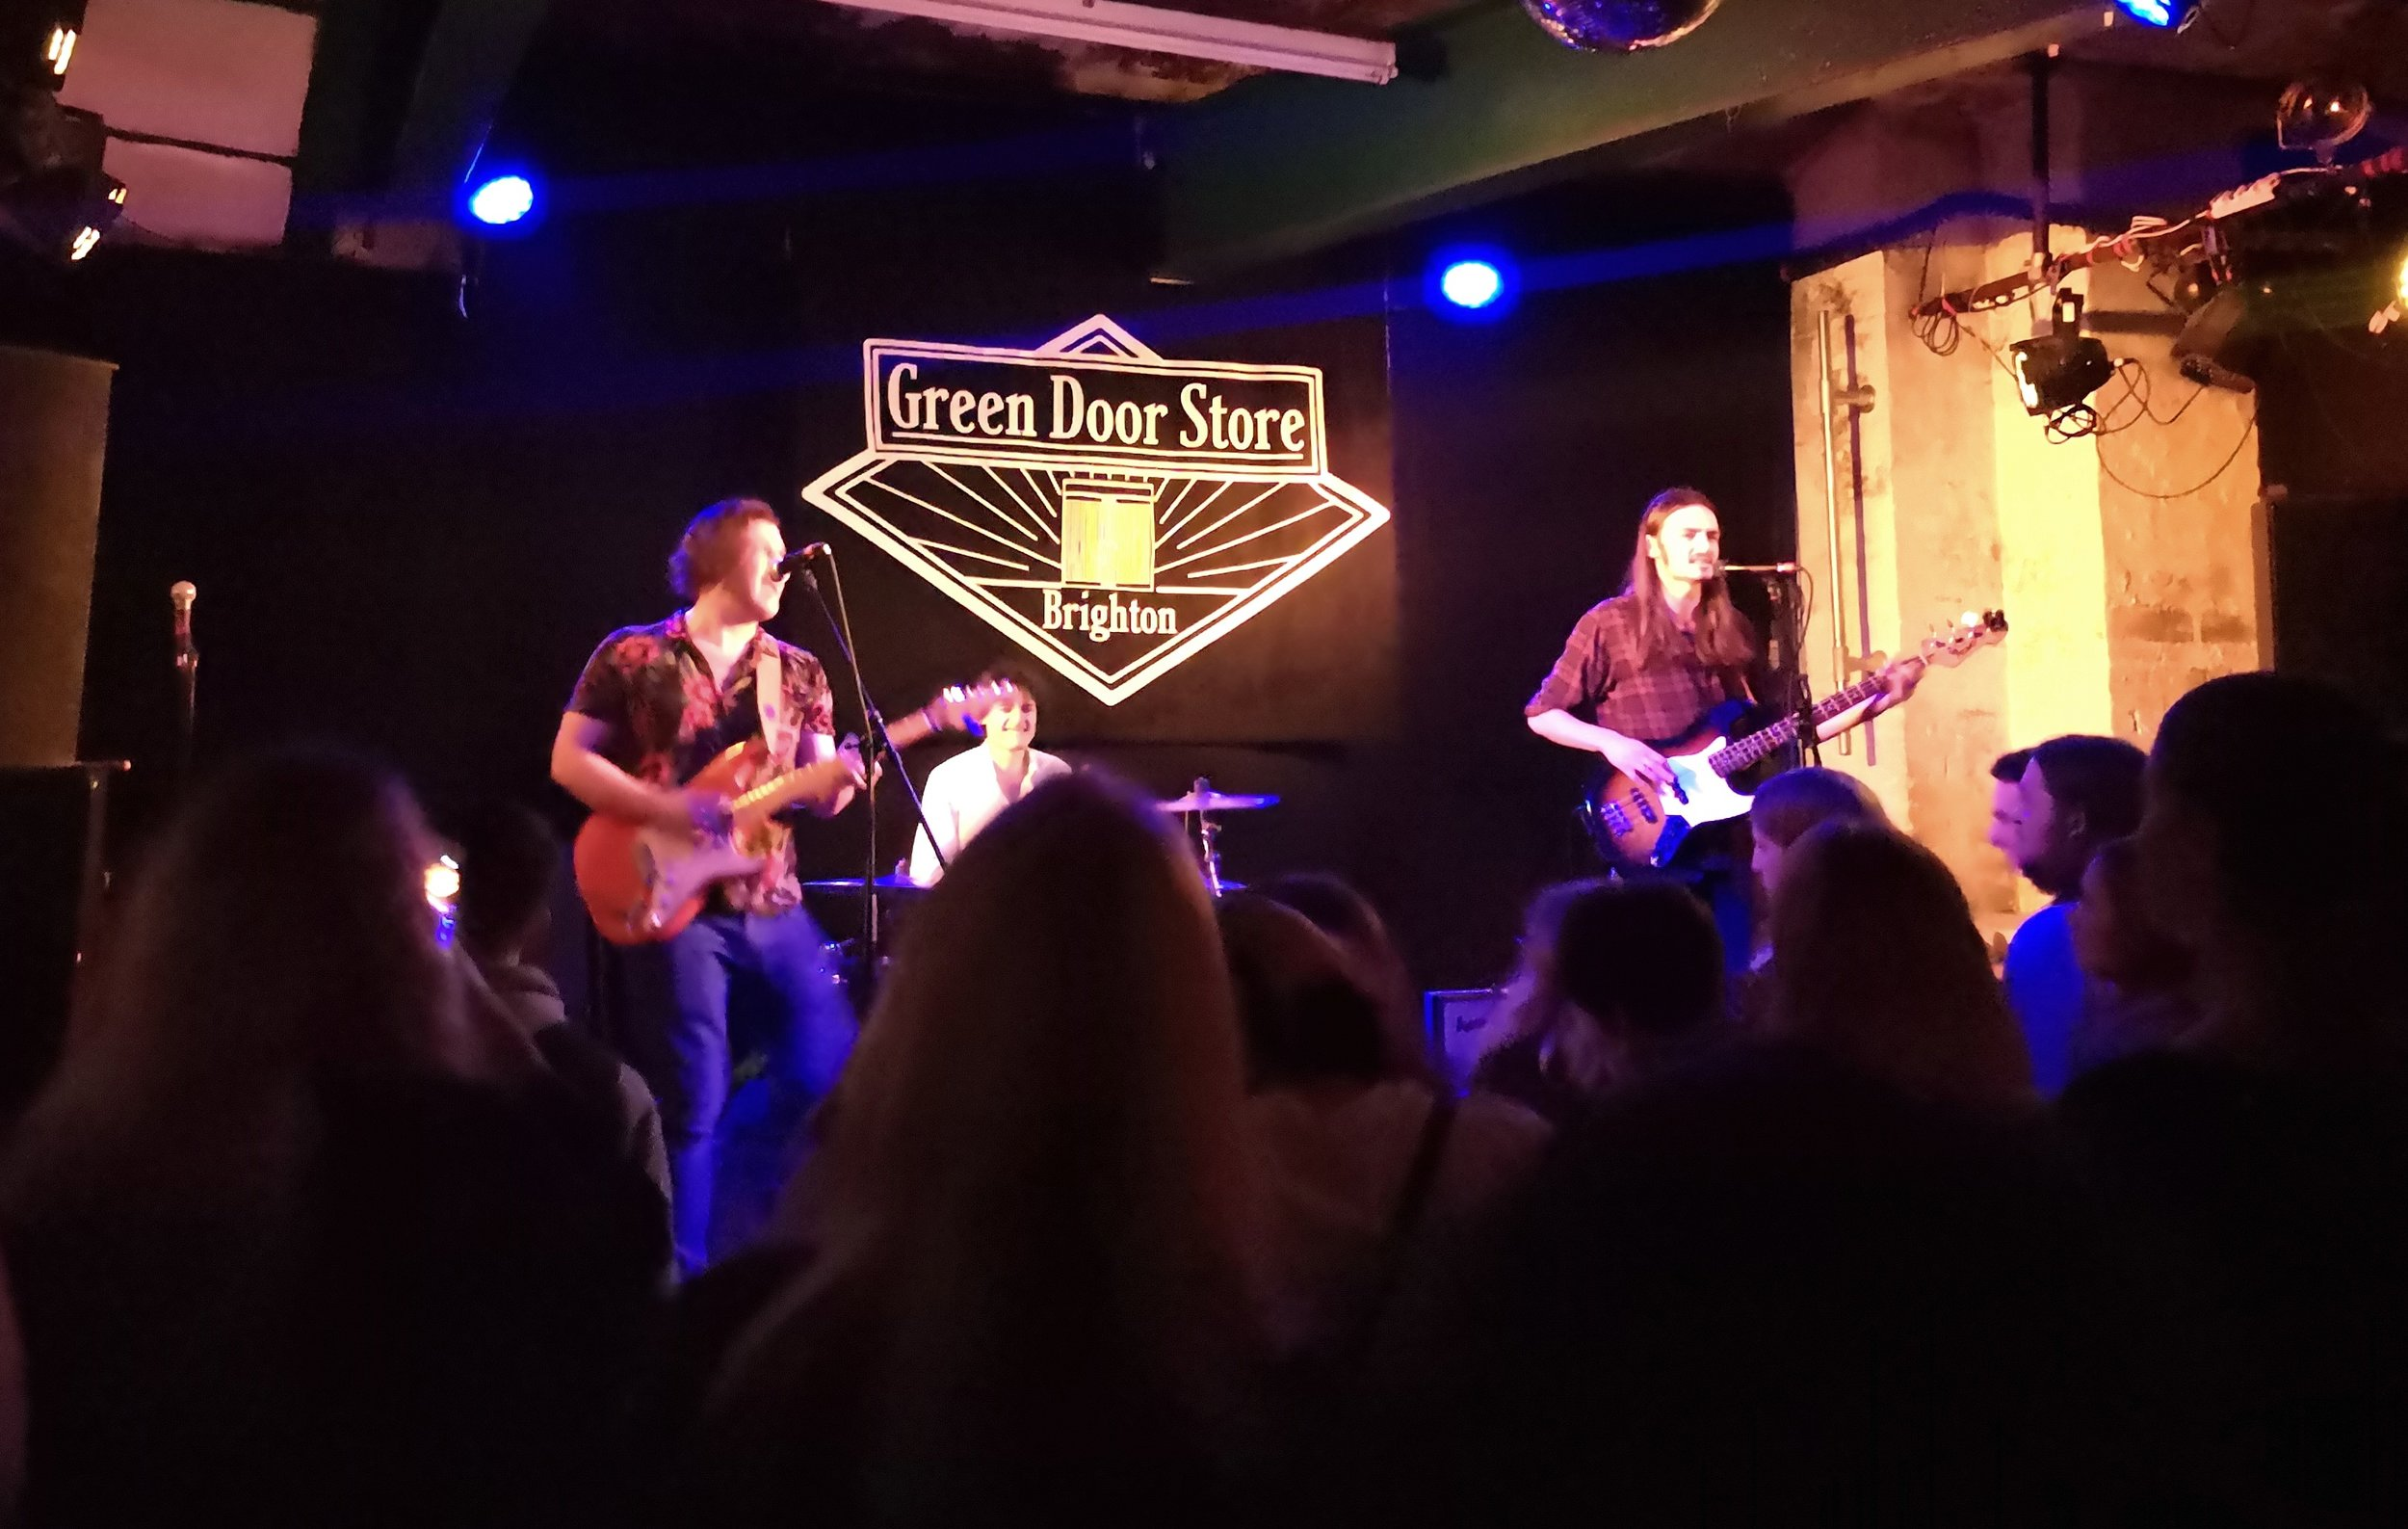 bluebound band brighton green door store review music gig